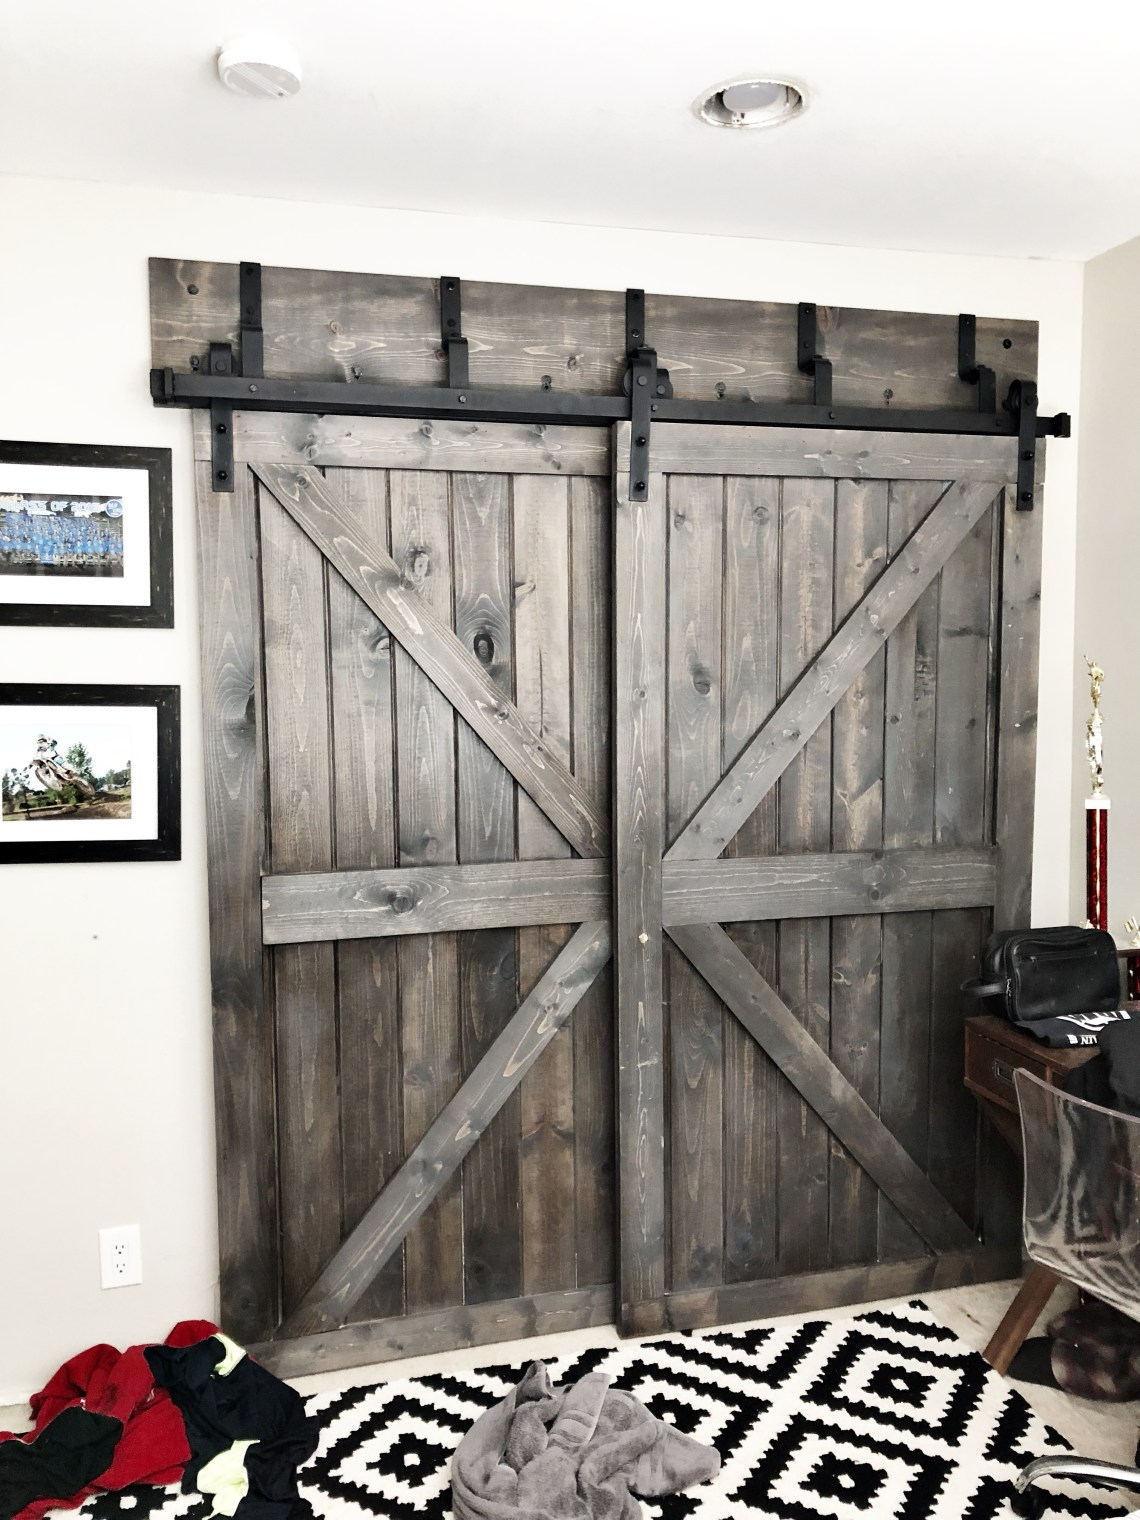 Diy Bypass Closet Barn Doors For 70 Each Using Tongue And Groove